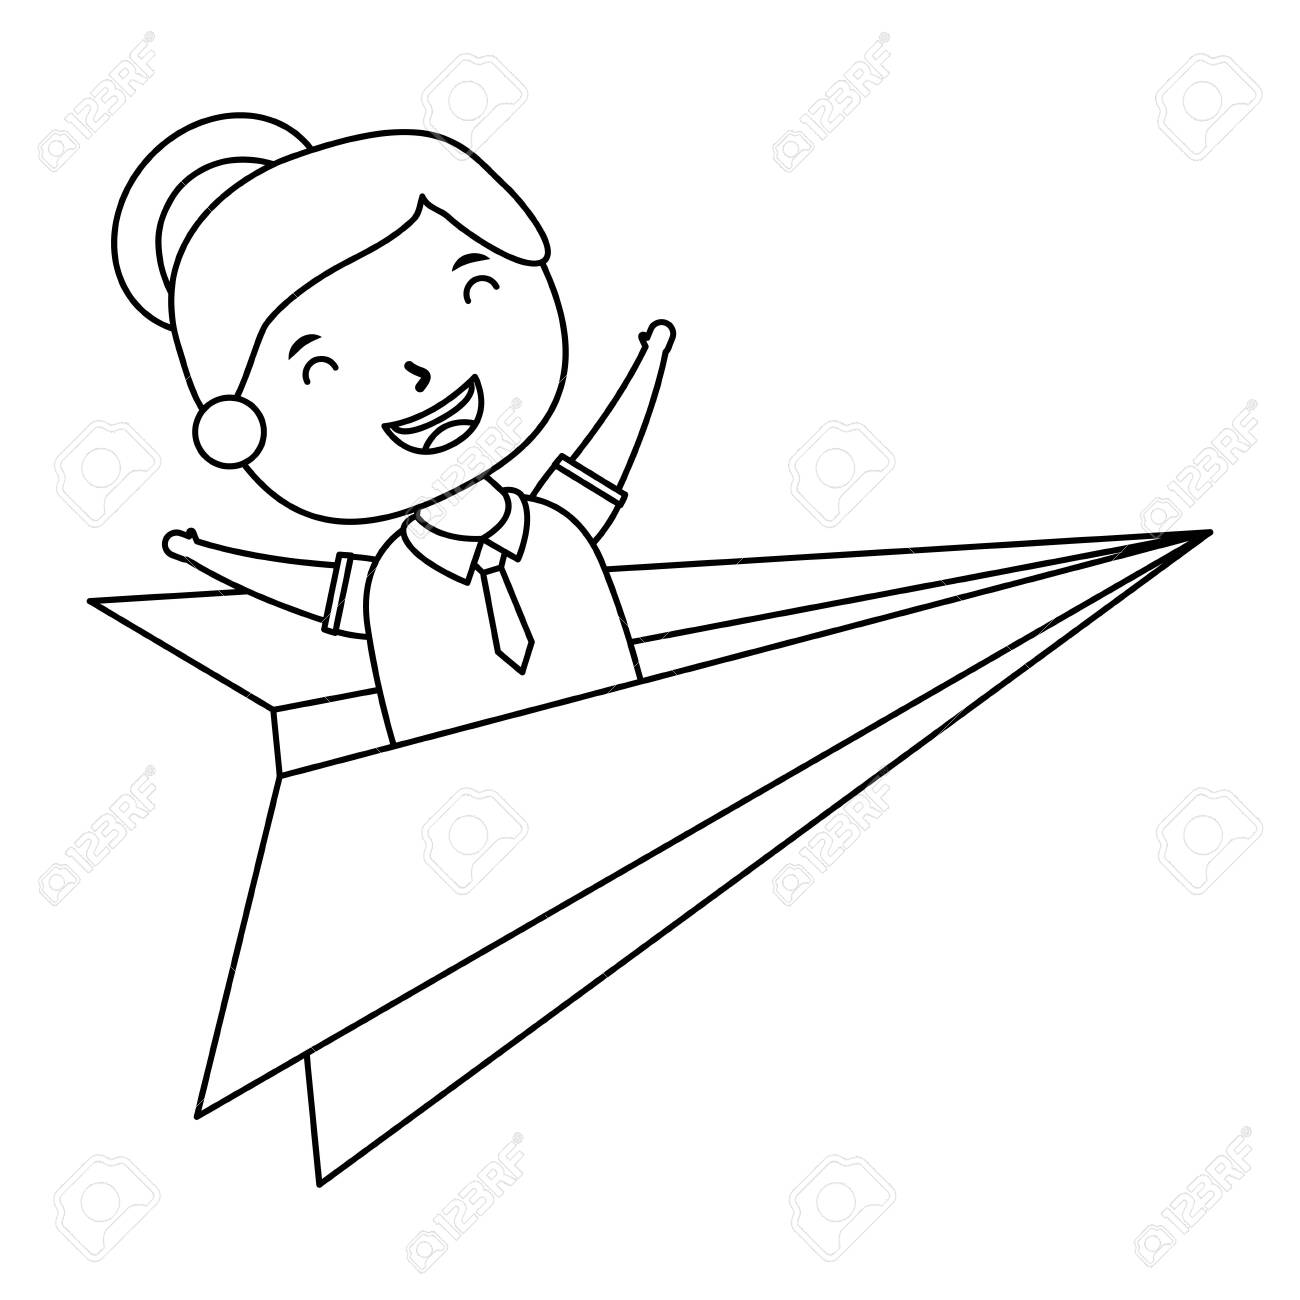 Cute Little Student Girl With Paper Airplane Vector Illustration Royalty Free Cliparts Vectors And Stock Illustration Image 149771797